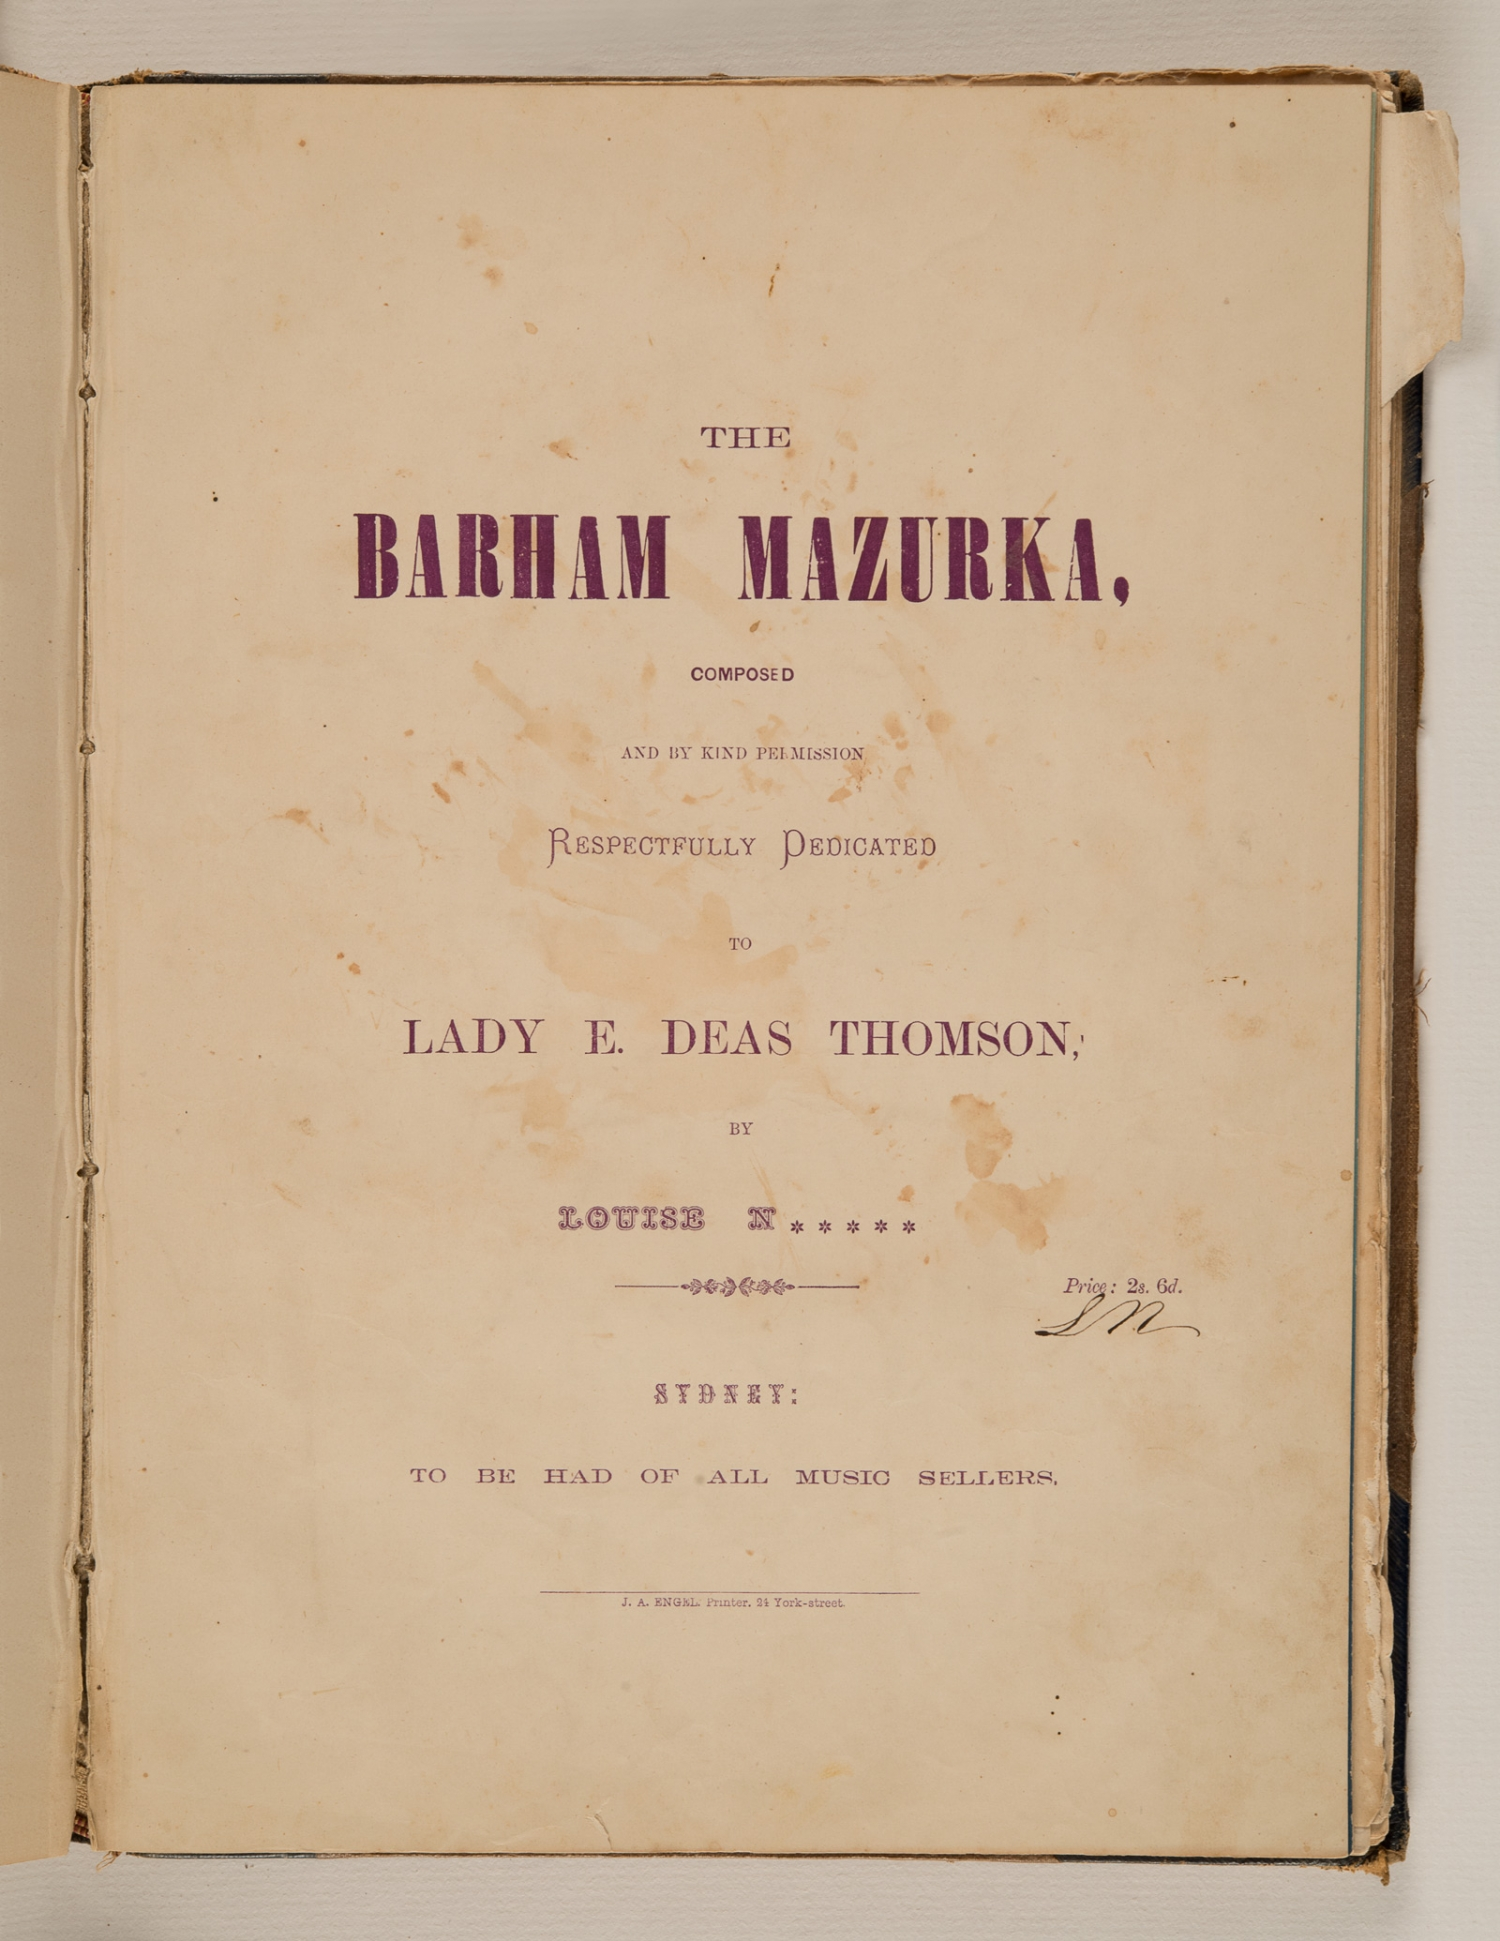 Sheet music, 'The Barham Mazurka', composed by Louise N, published 1876